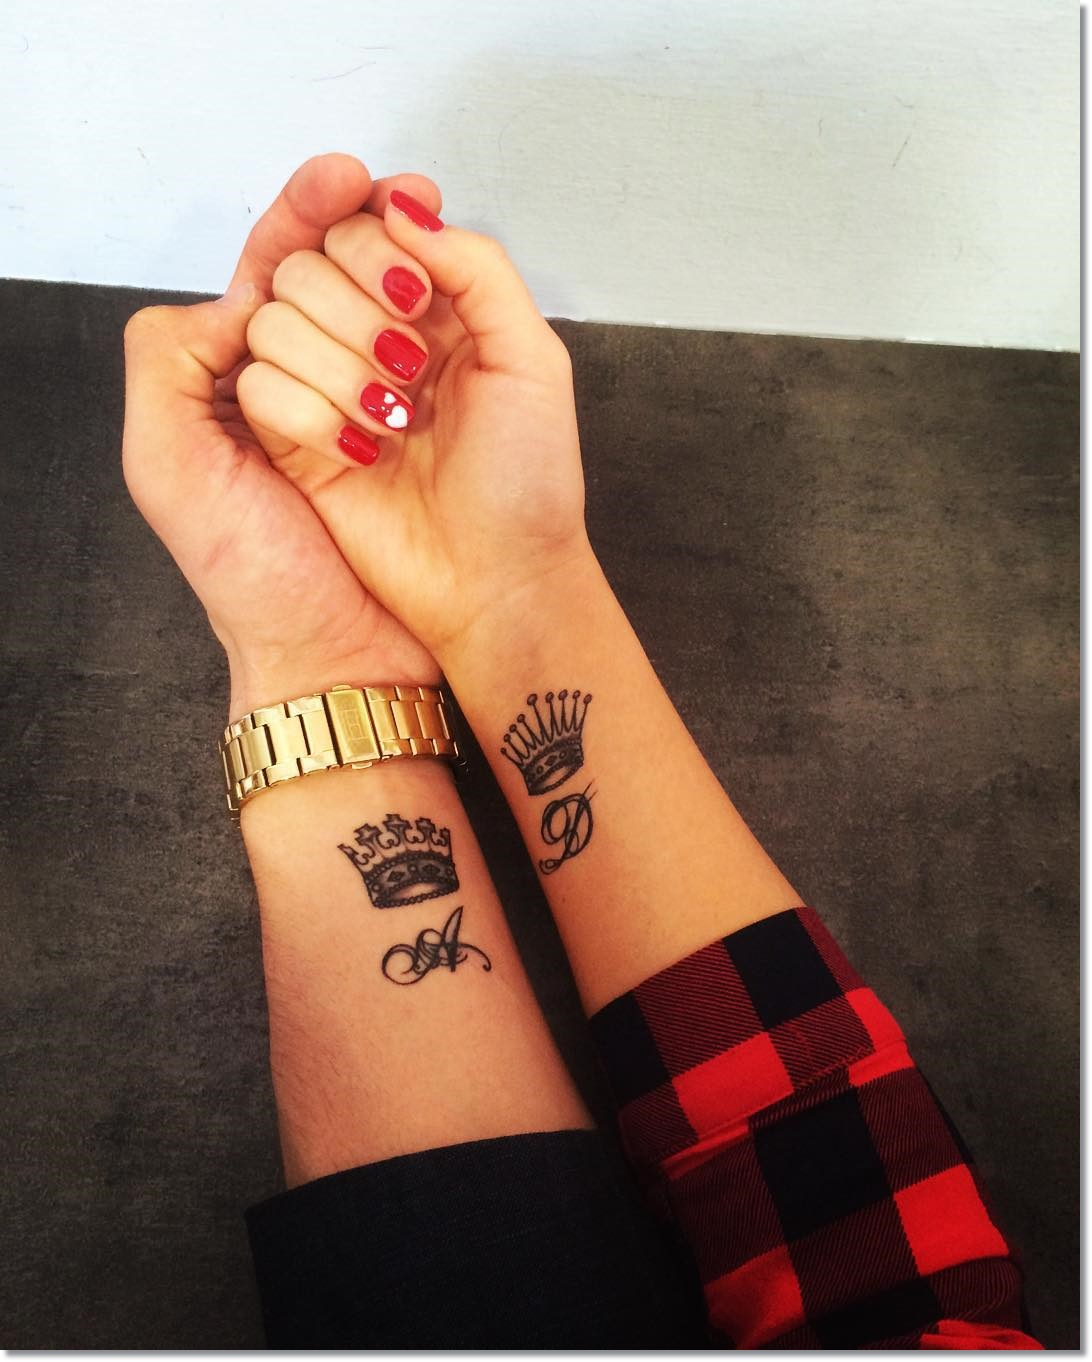 Crown tattoo on tumblr - Small Crown Tattoo On Wrist For Couples